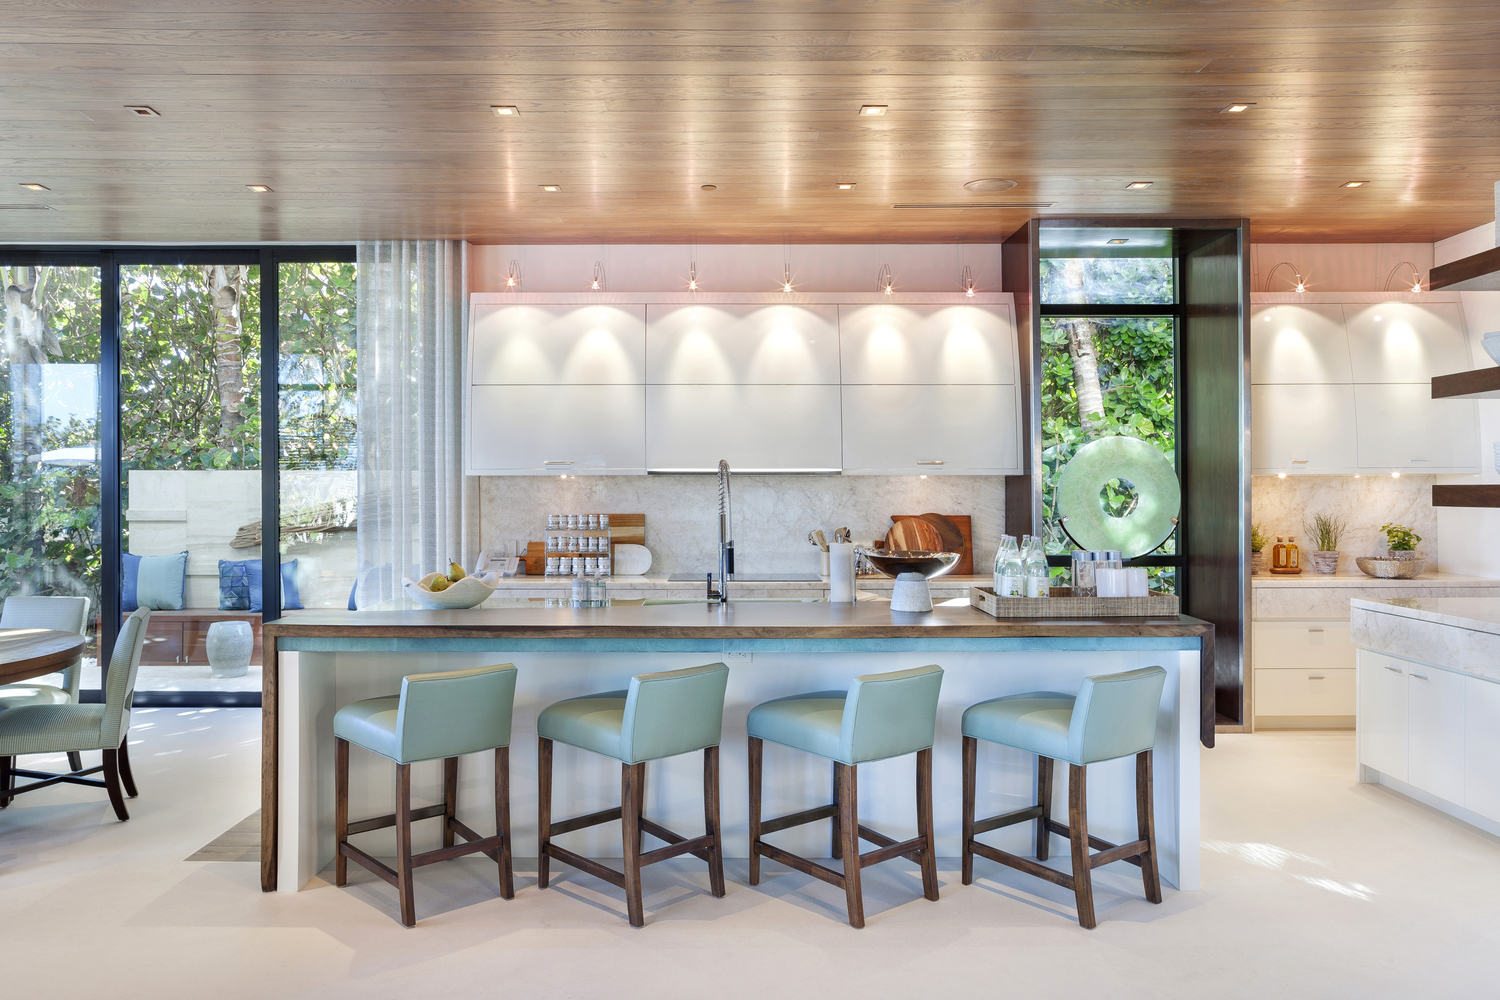 Palm Beach 2 — Superior Wood Products